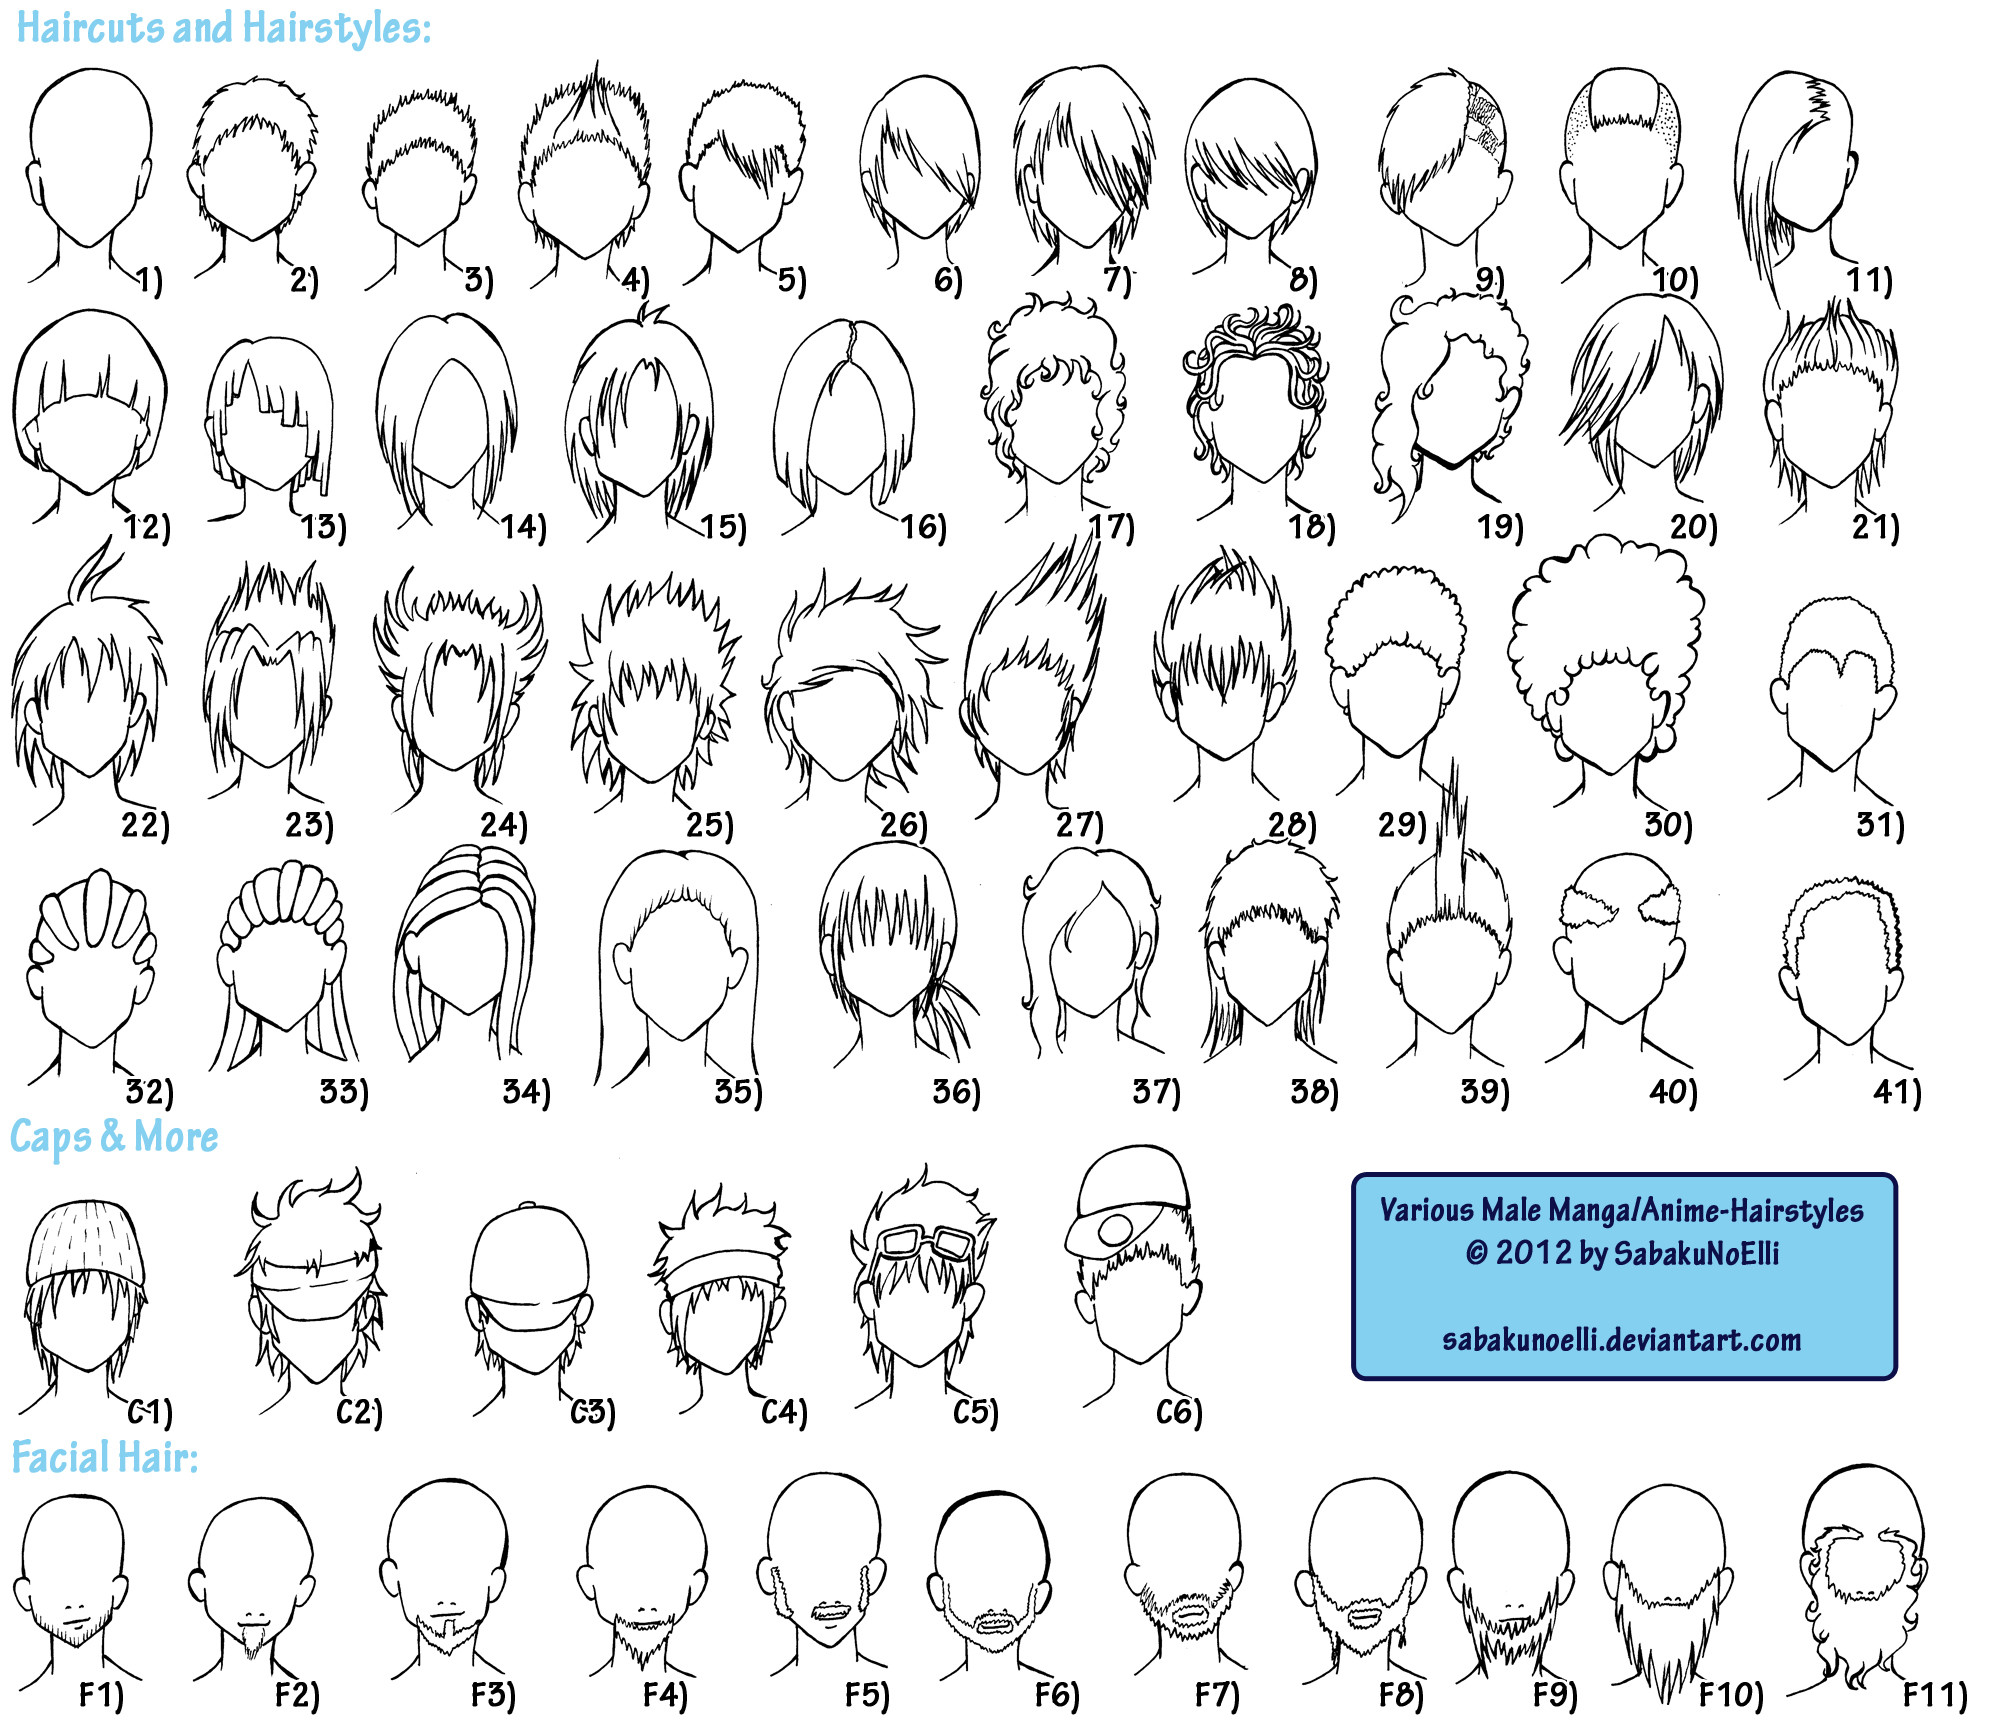 Manga Hairstyles Male  Various Male Anime Manga Hairstyles by Elythe on DeviantArt